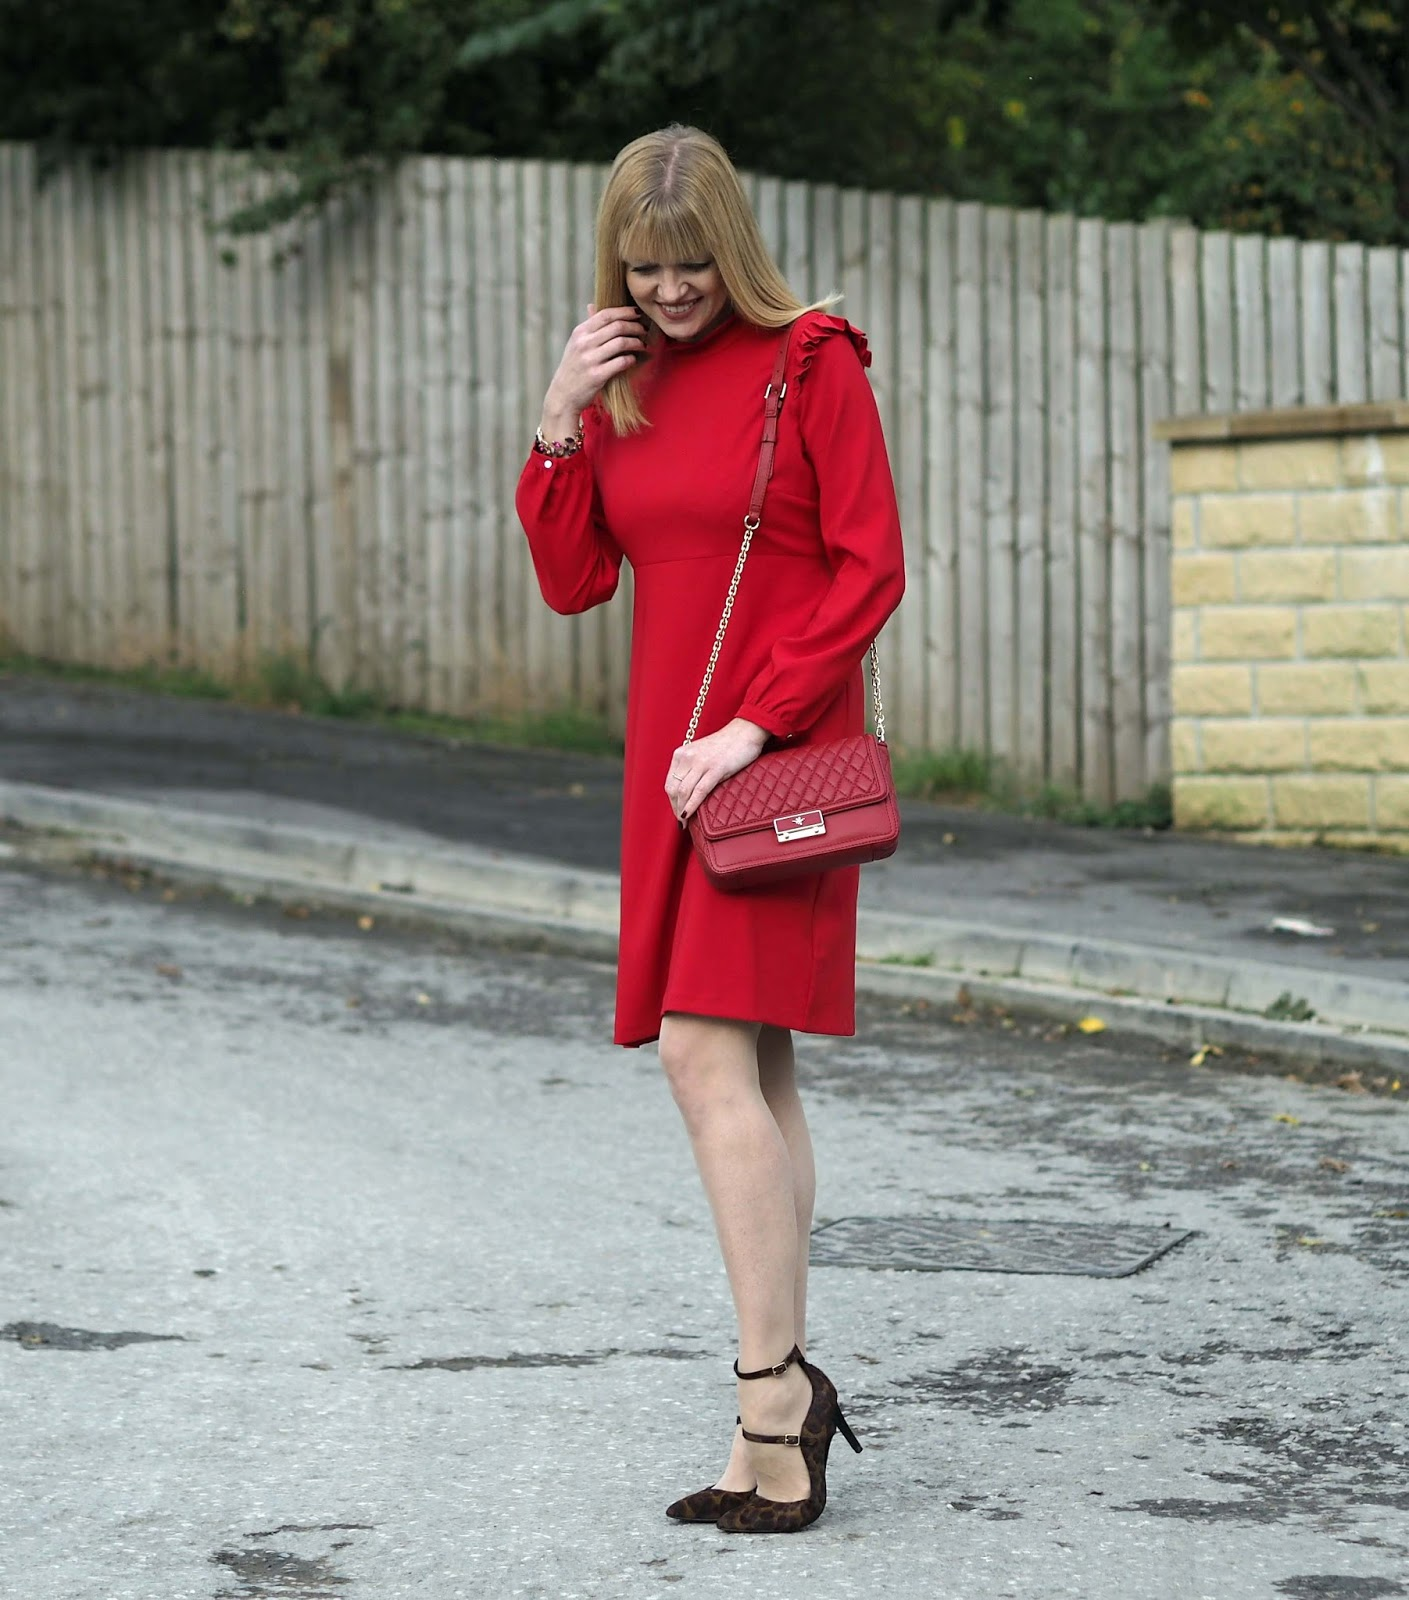 Red ruffle dress with Eternal collection red, purple statement gemstone bracelet